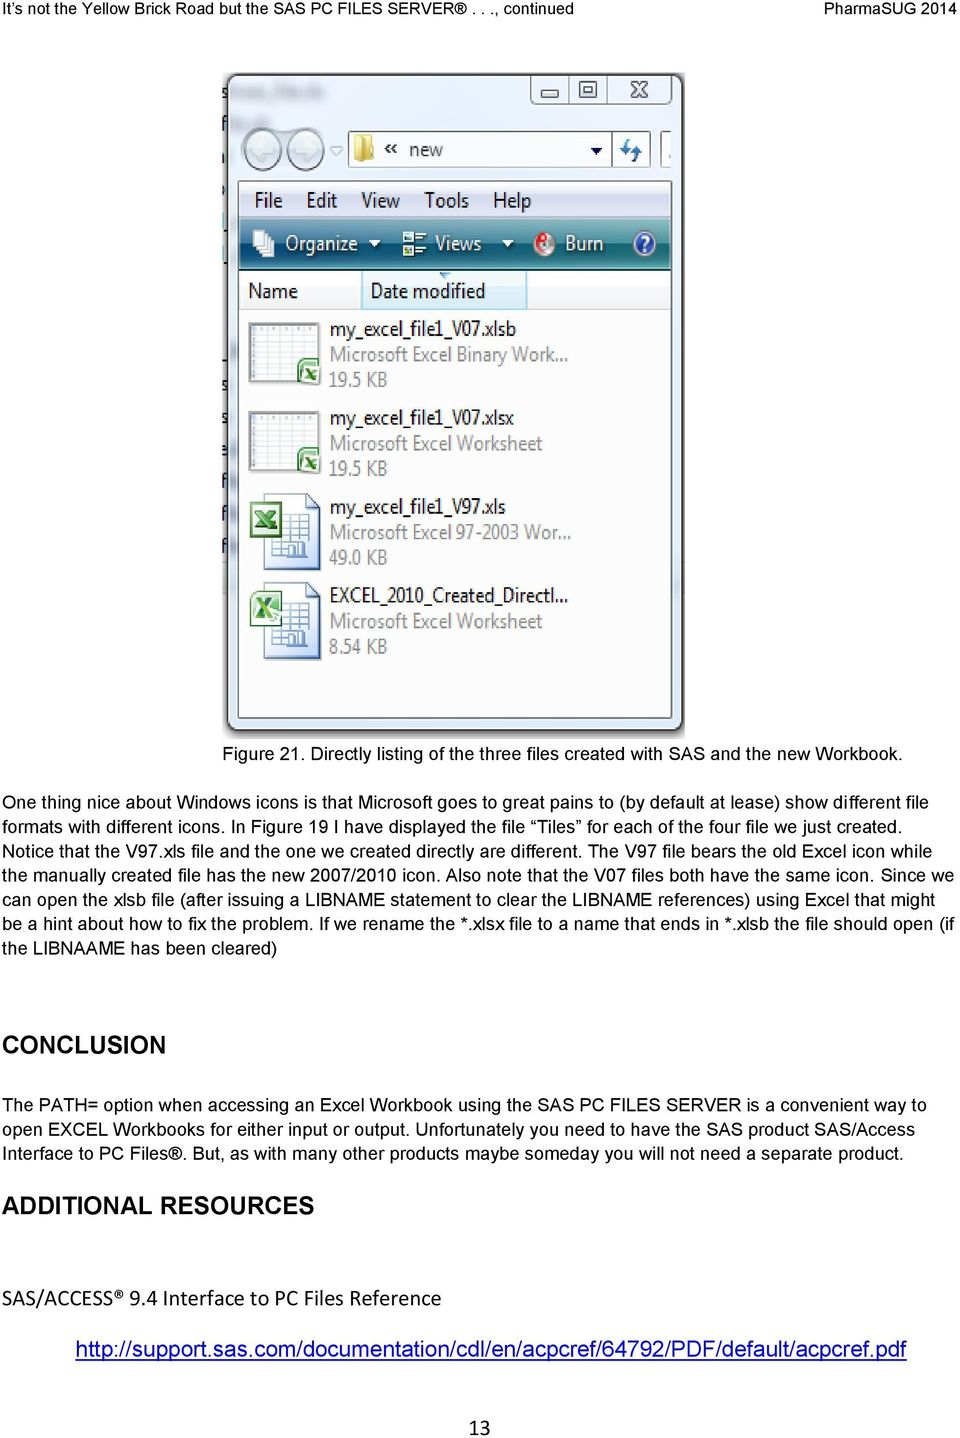 worksheet Sas Import Excel Worksheet it s not the yellow brick road but sas pc files server will take in figure 19 i have displayed file tiles for each of four we